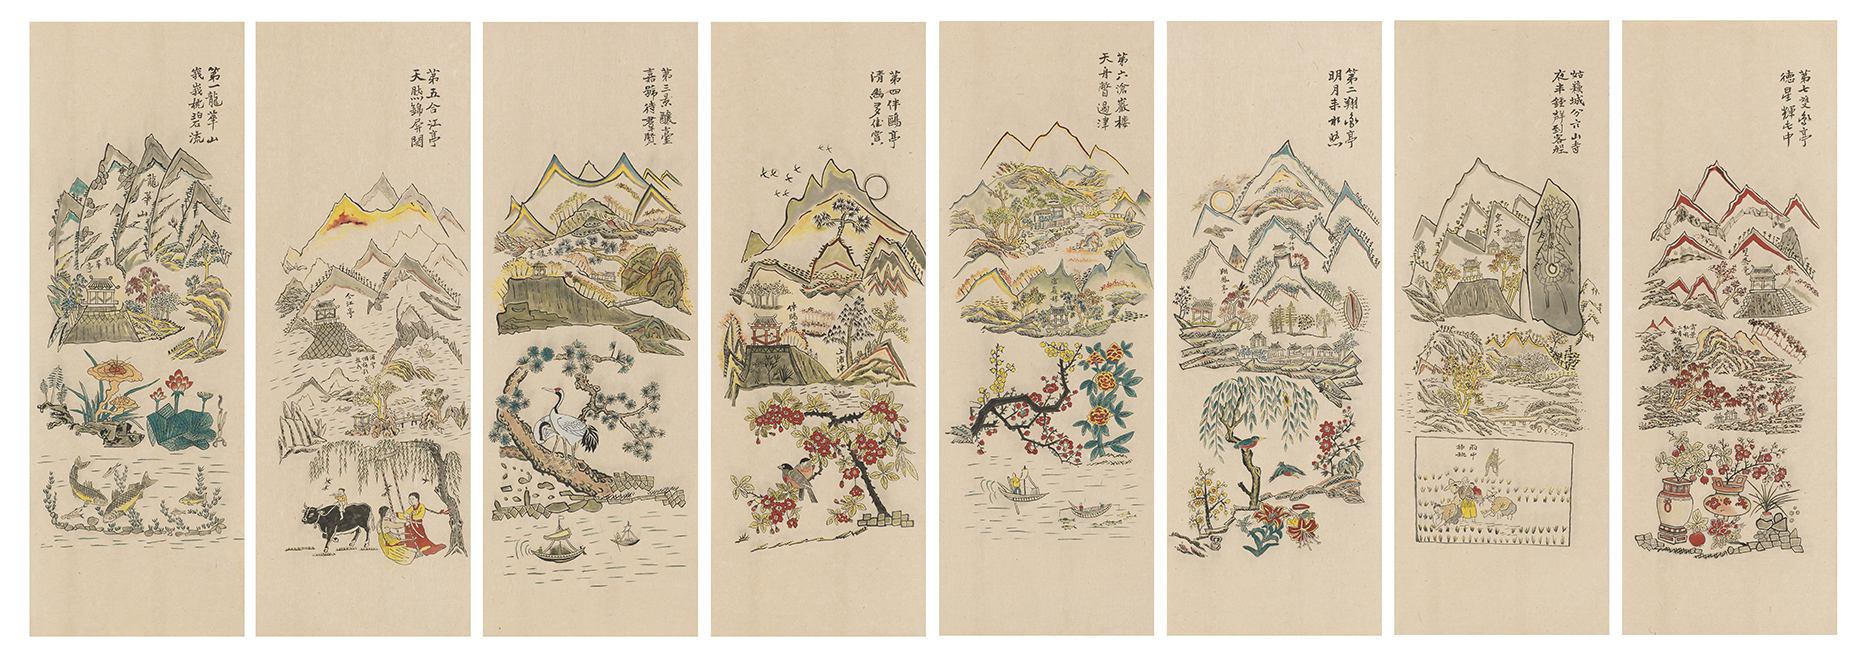 Negative and Positive Cultural Landscape, 2014, Color on Korean paper, (31 x 89 cm) x 8panels